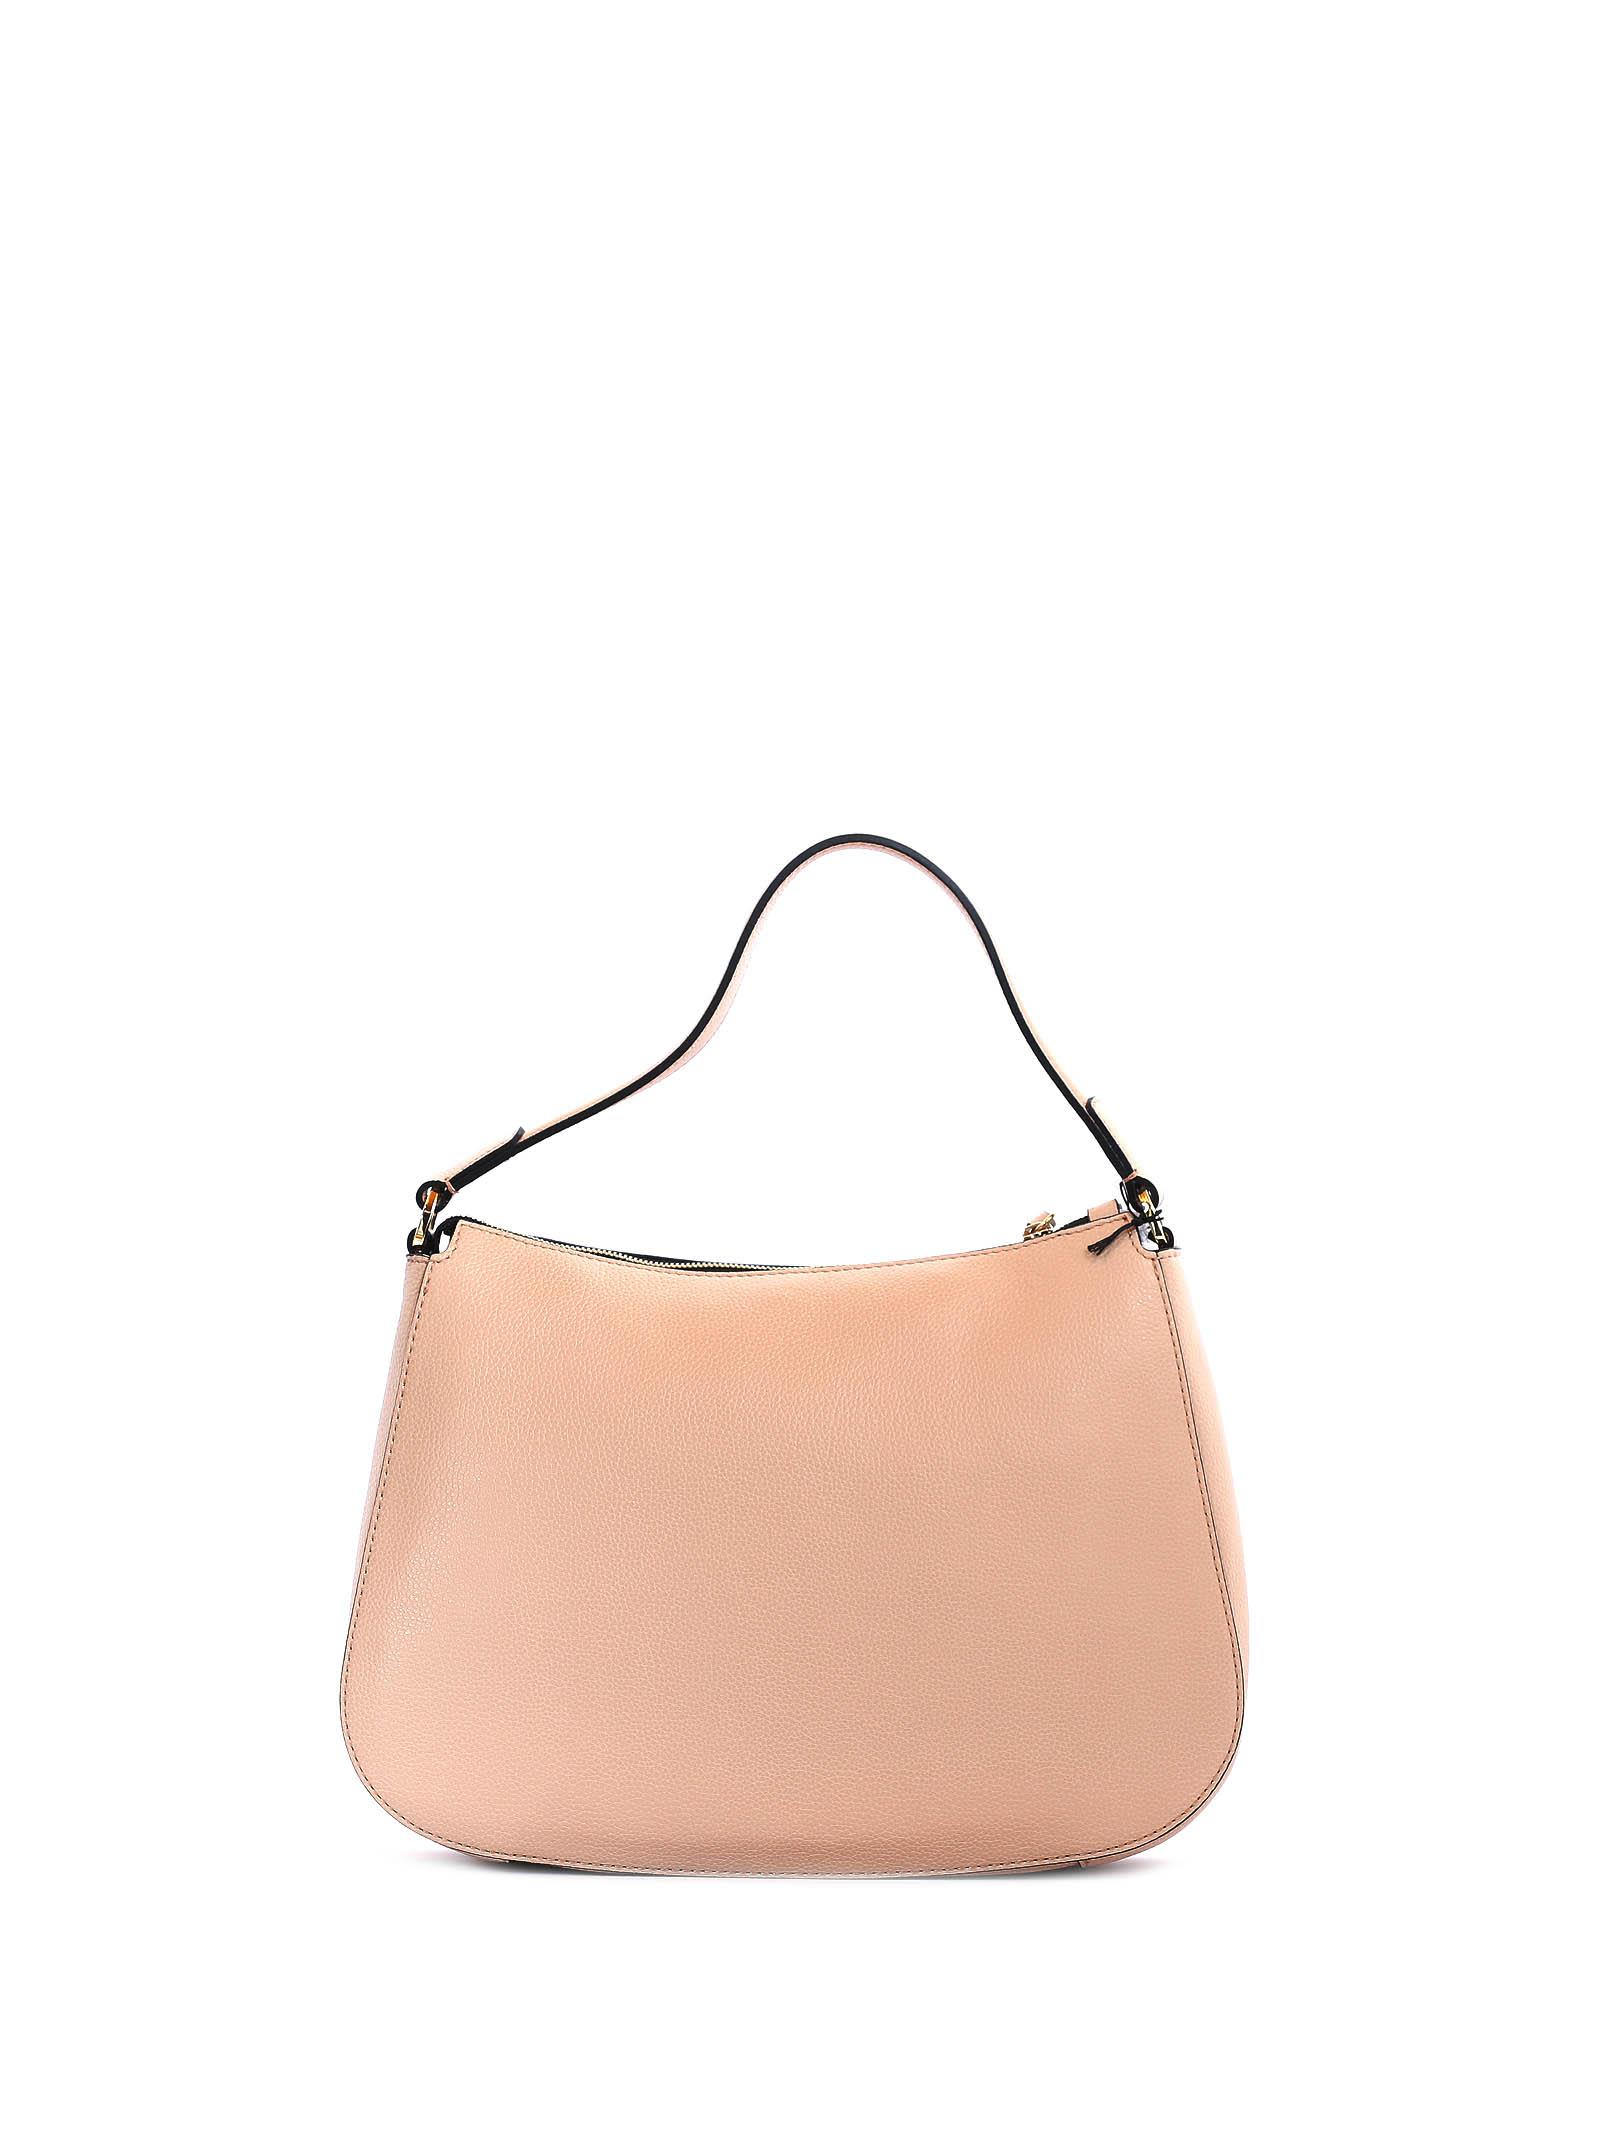 Gianni Chiarini Pink leather shoulder bag mlcz1rzjOO